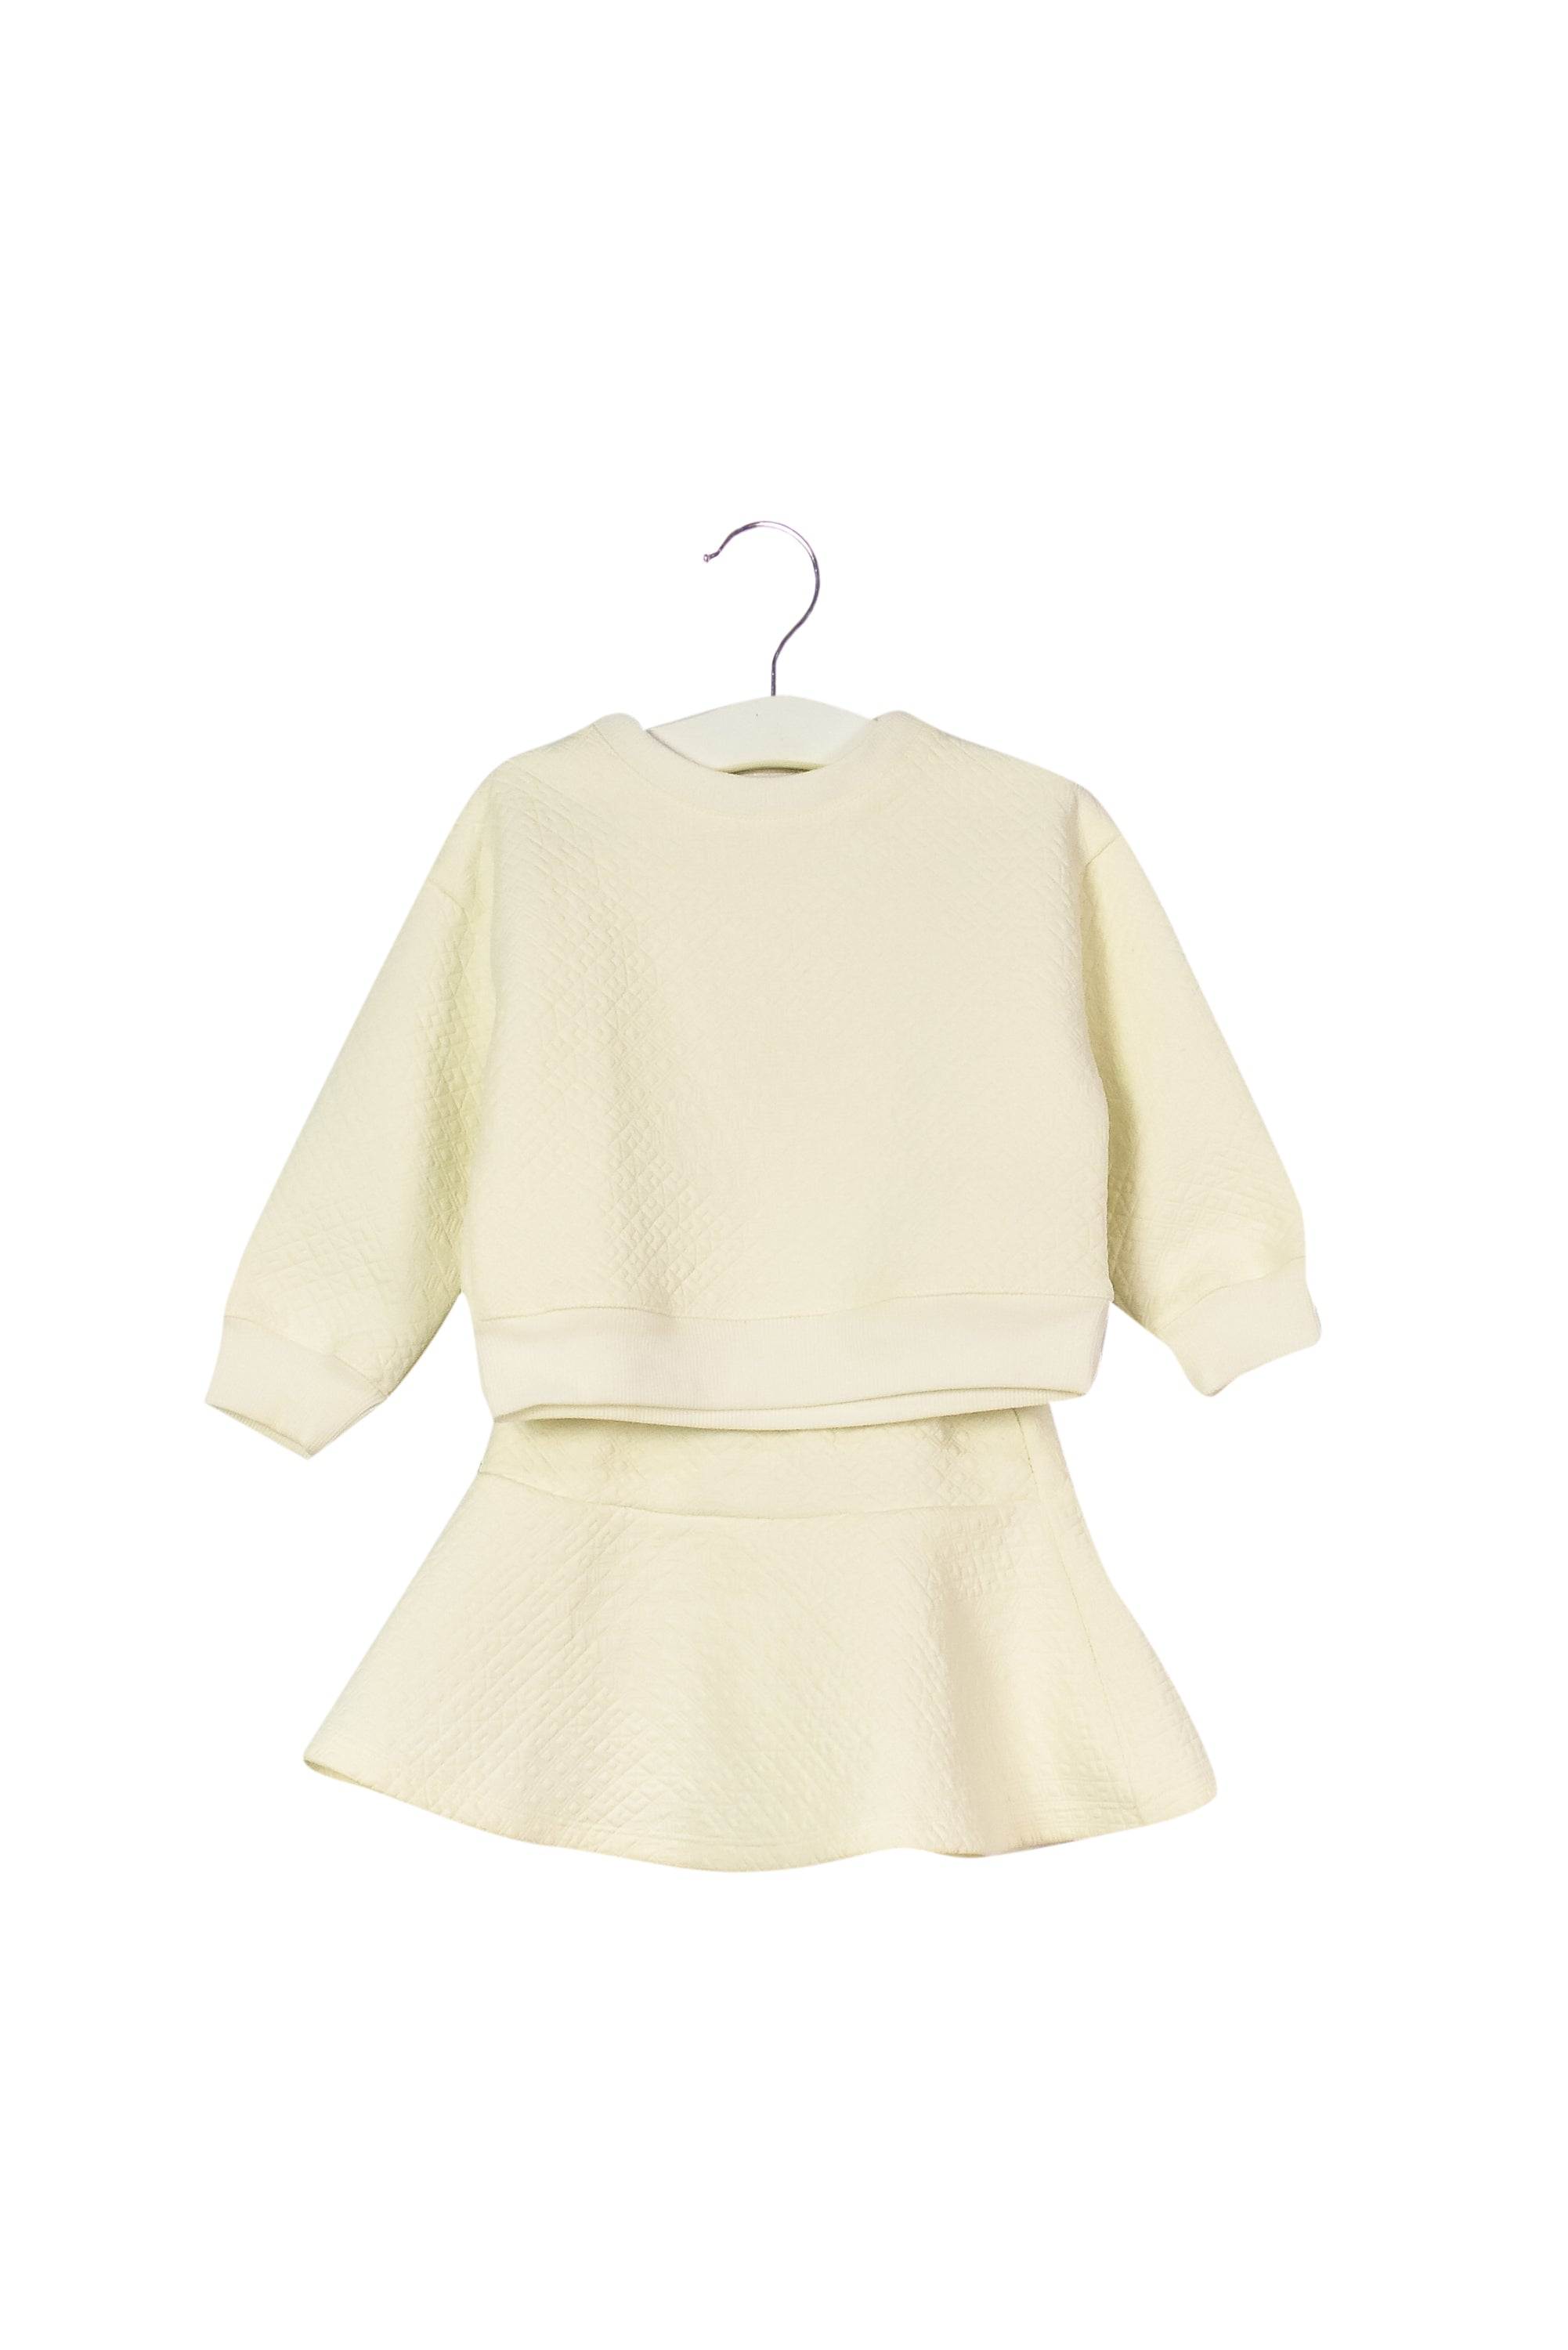 10040940 Gingersnaps Kids~Top and Skirt Set 2T at Retykle